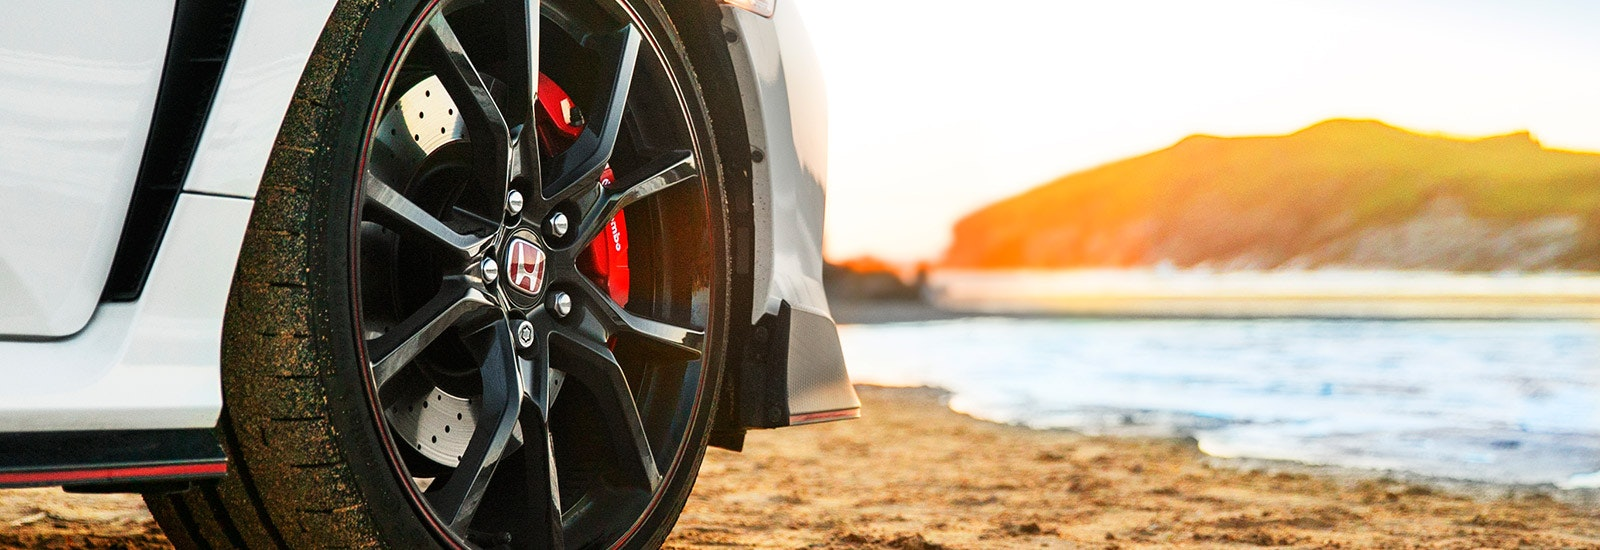 Championship White Honda Civic Type R front wheel closeup, viewed from the front